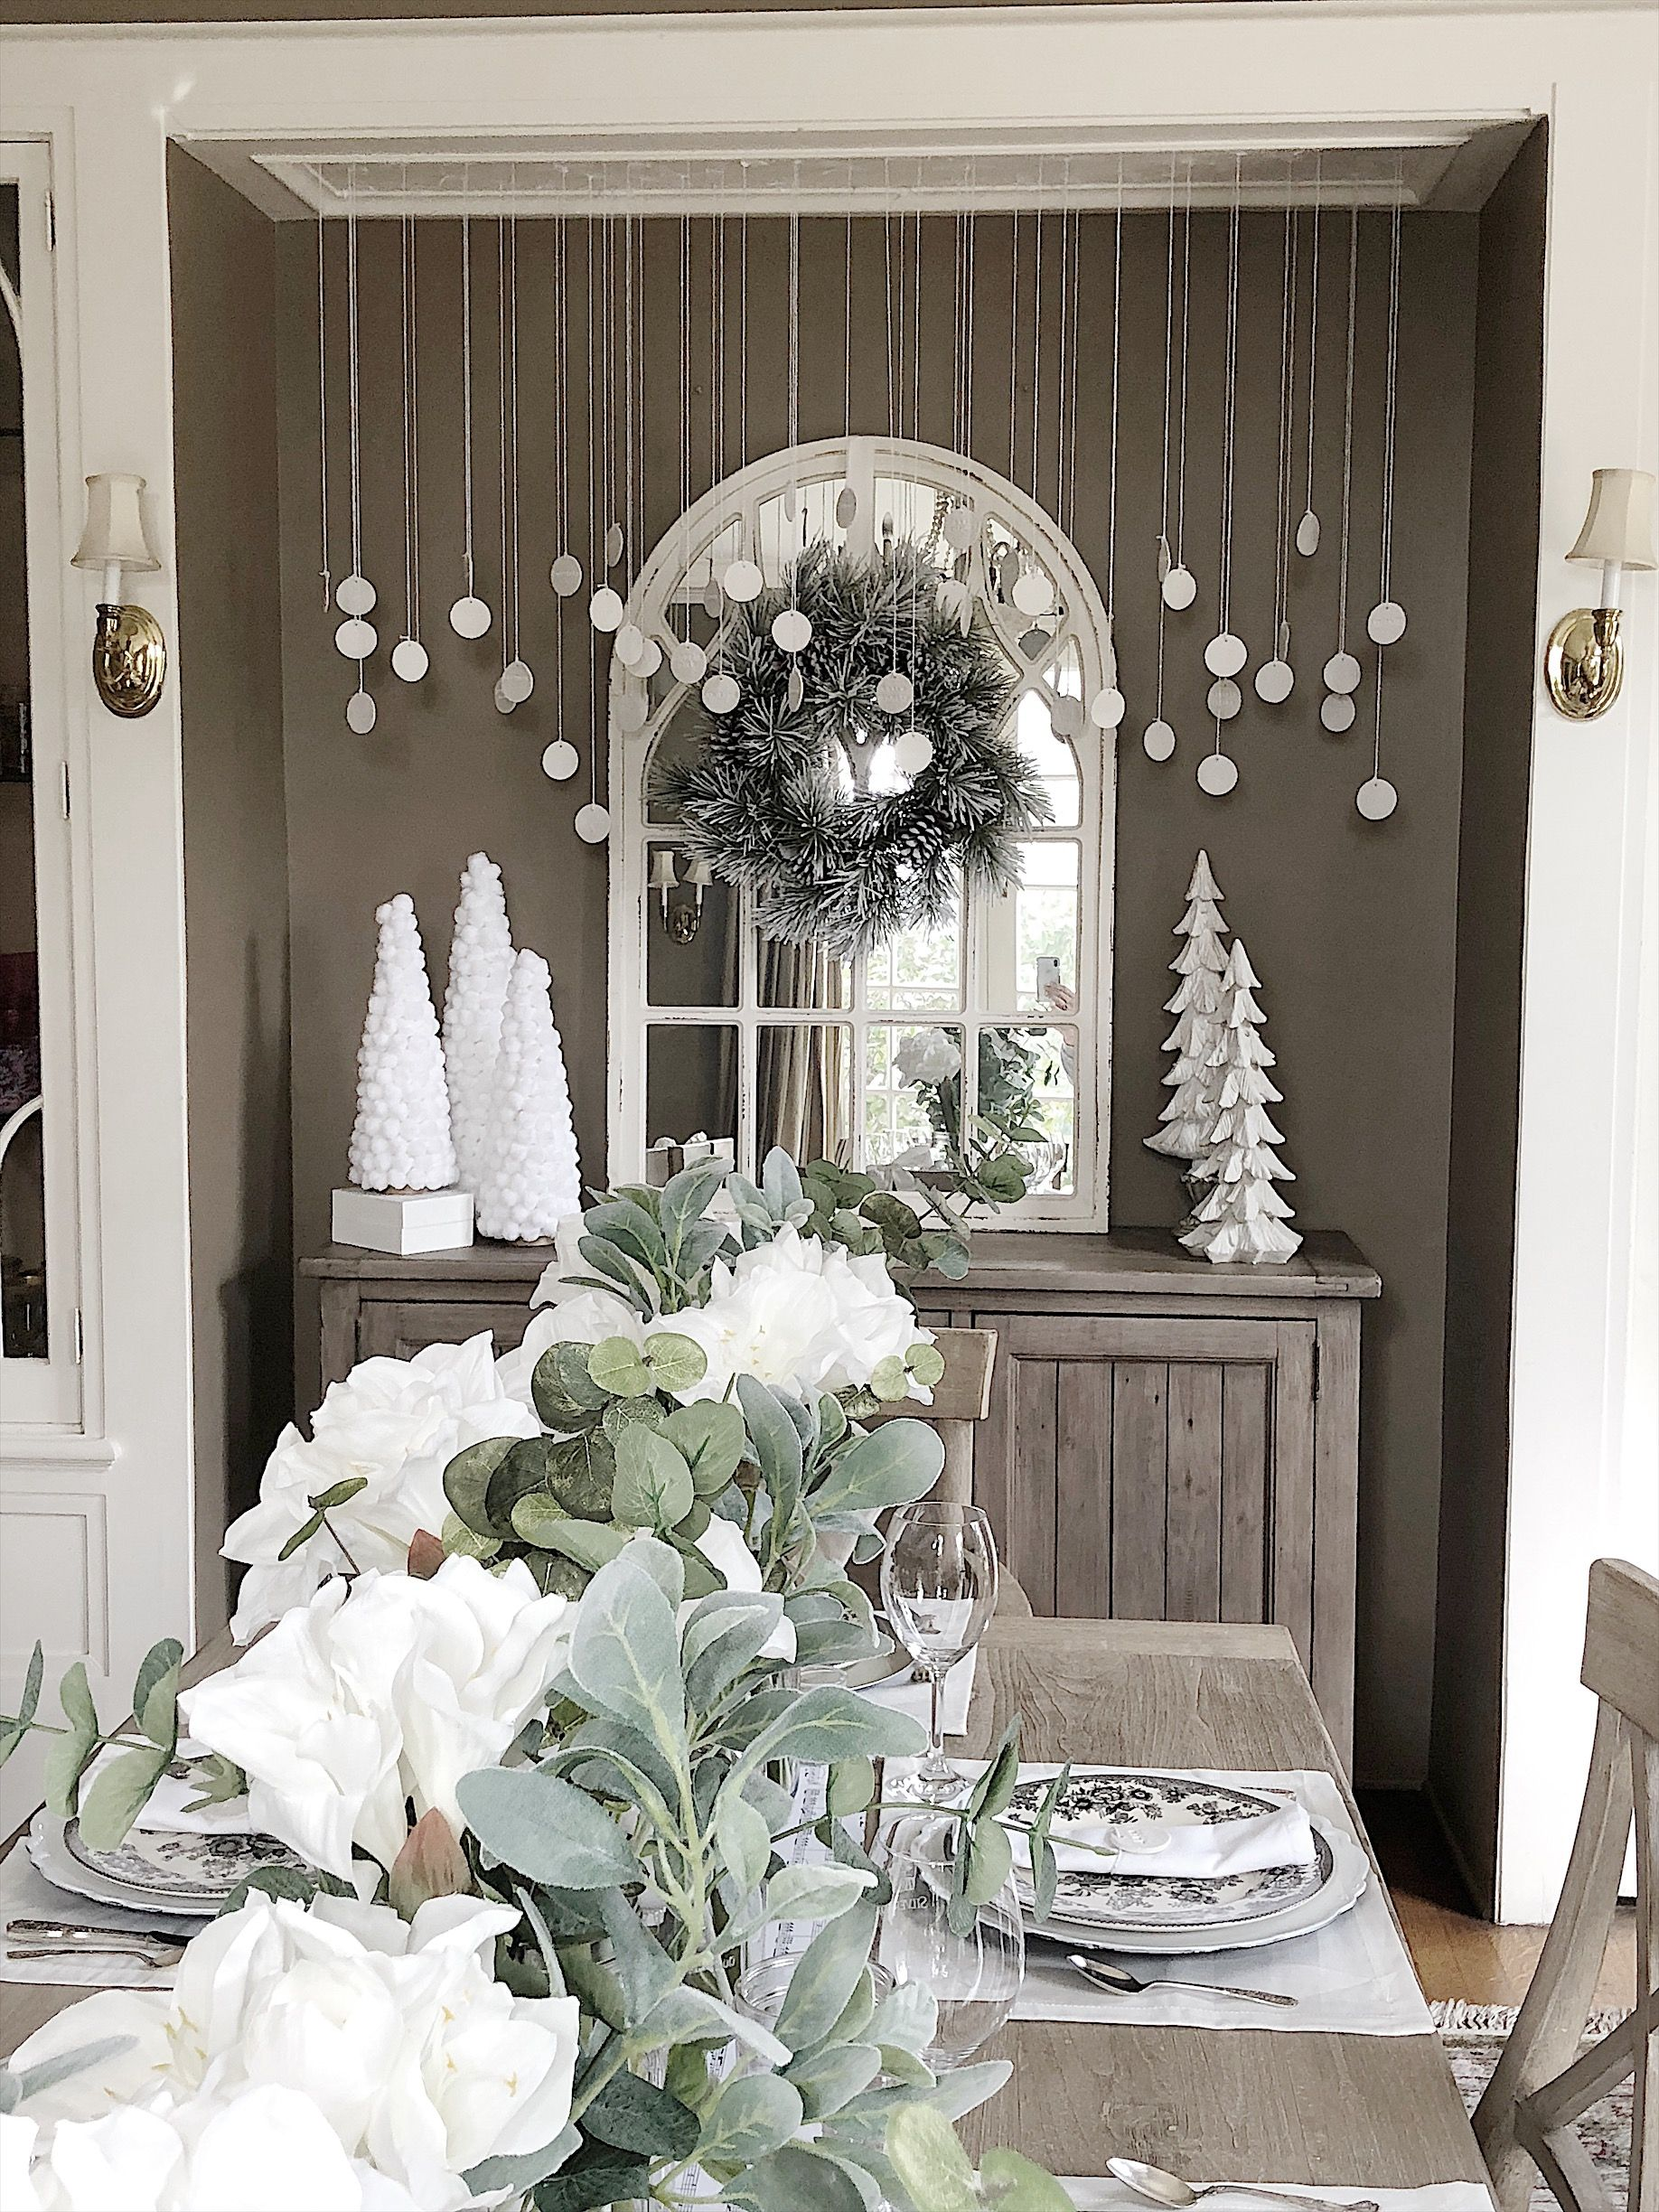 A Farmhouse Christmas with Hobby Lobby Hobby lobby decor